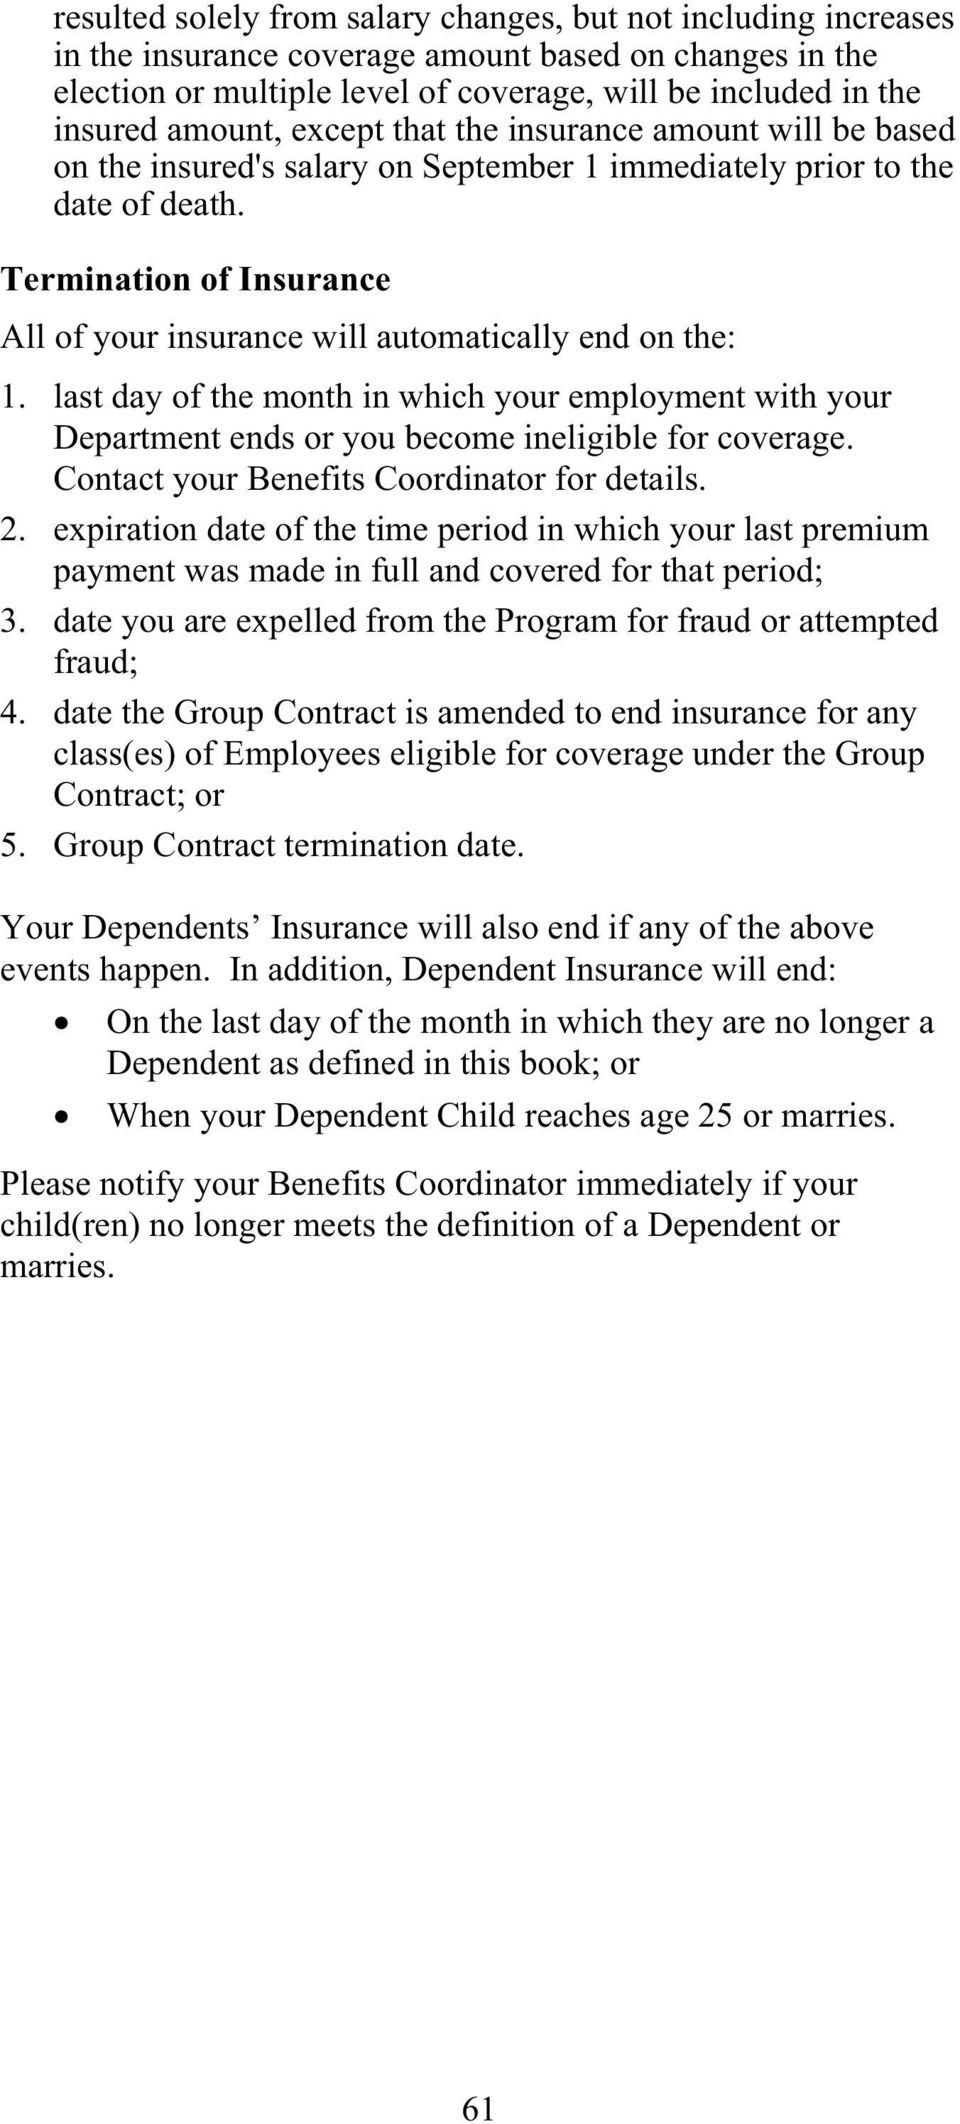 Termination of Insurance All of your insurance will automatically end on the: 1. last day of the month in which your employment with your Department ends or you become ineligible for coverage.